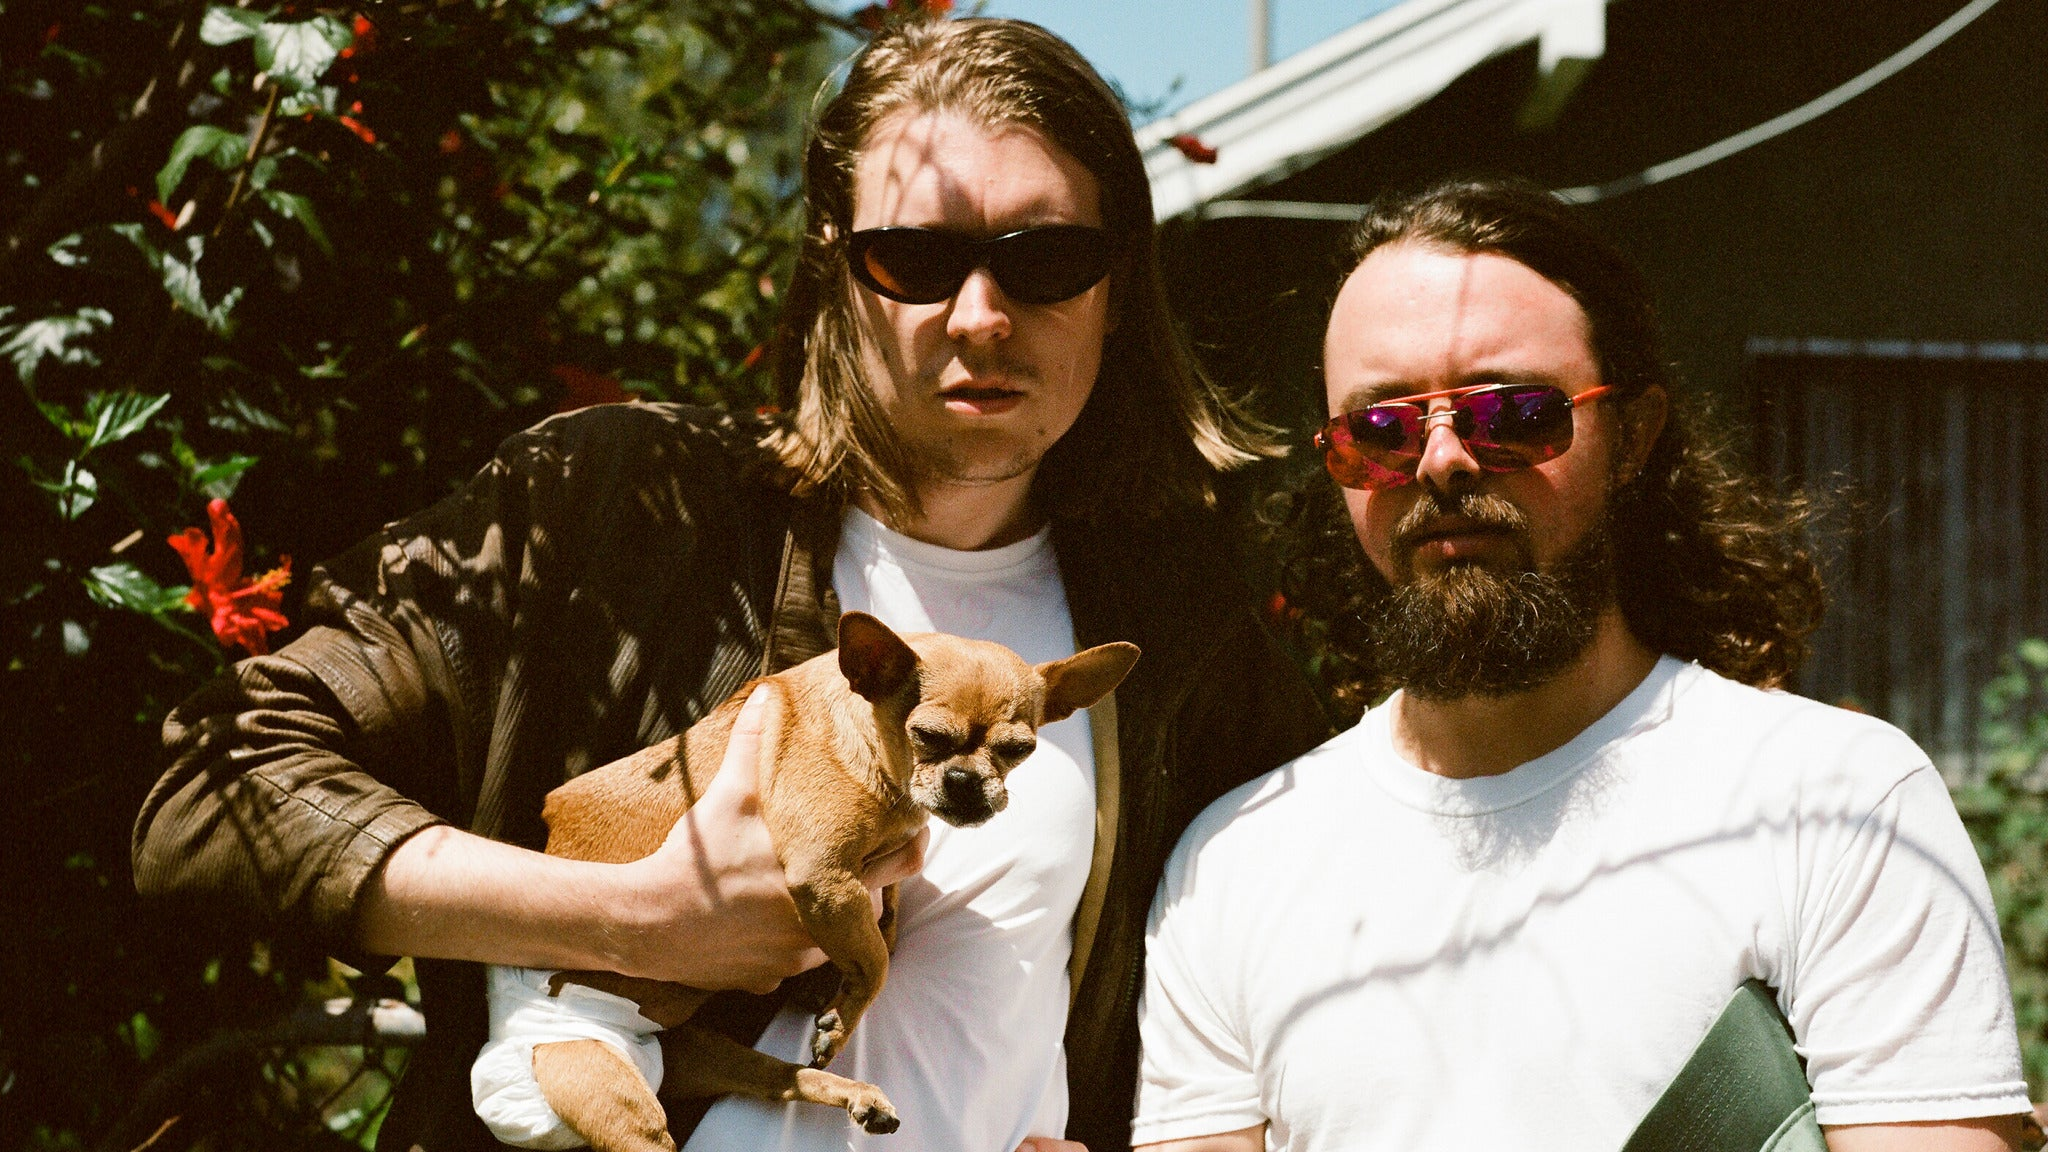 Alex Cameron at Ogunquit Playhouse